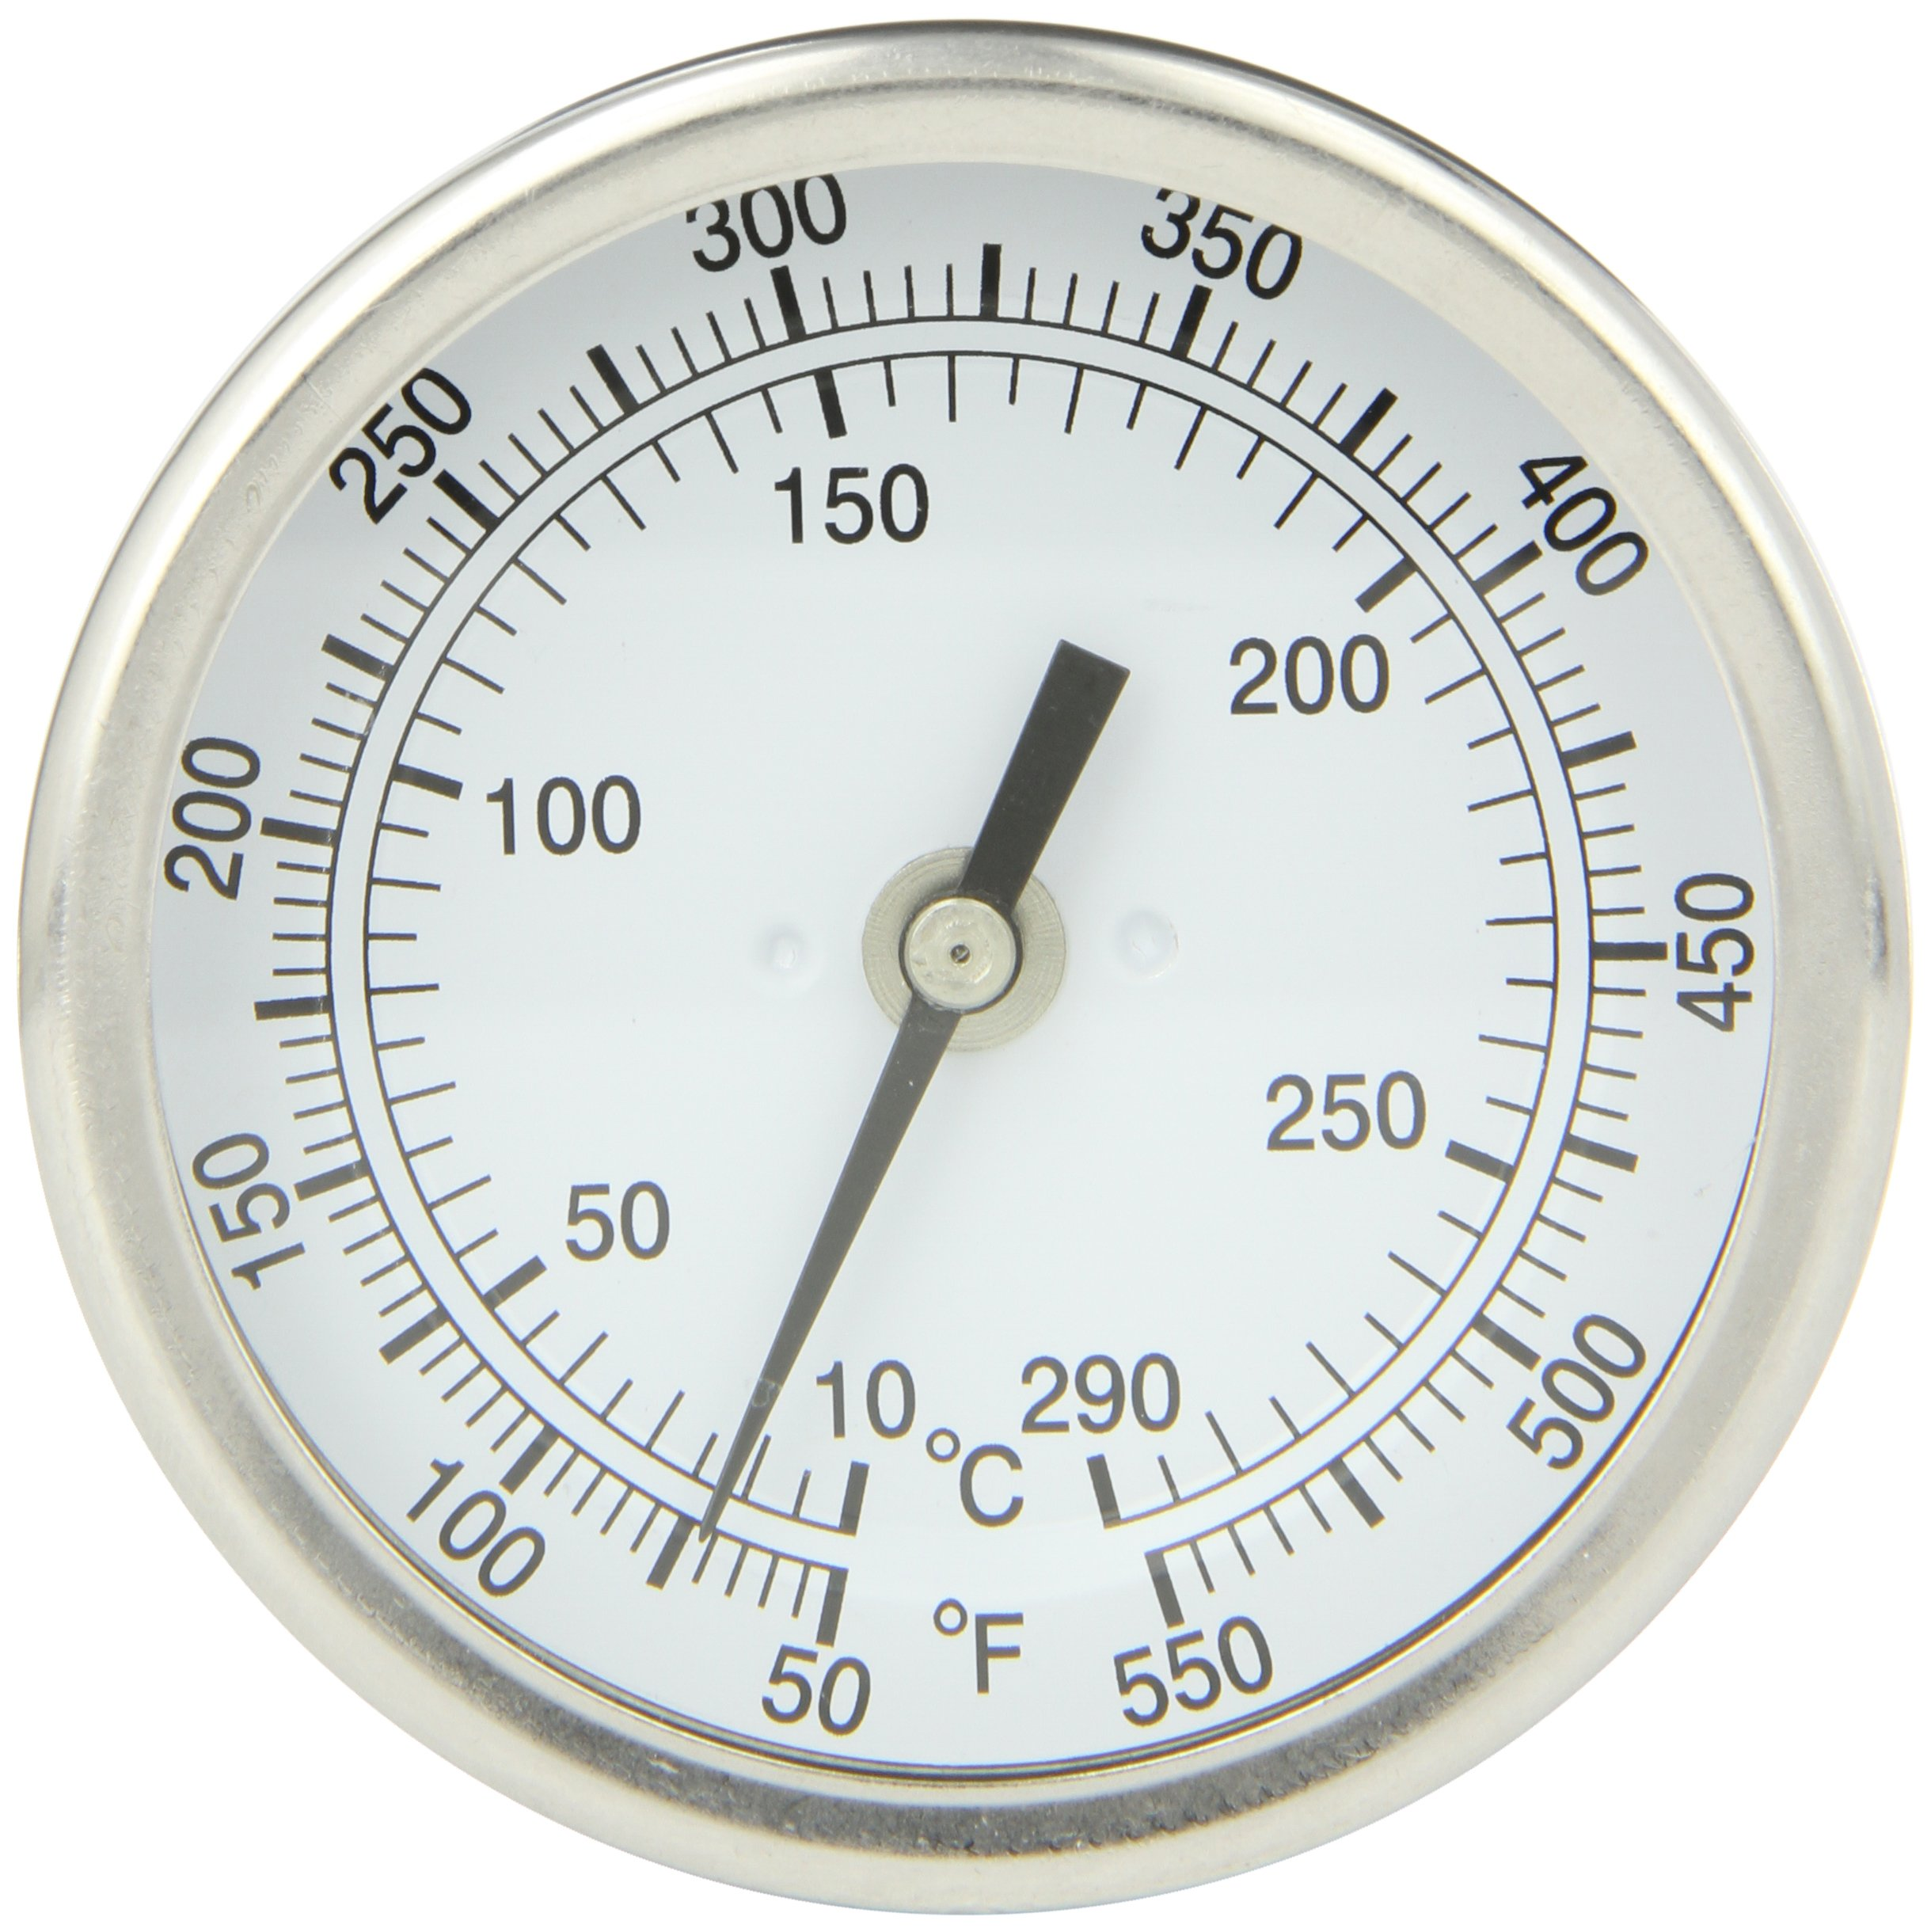 PIC Gauge B3B2-RR 3'' Dial Size, 50/550°F and 10/288°C, 2'' Stem Length, Back Angle Connection, Stainless Steel Case, 316 Stainless Steel Stem Bimetal Thermometer